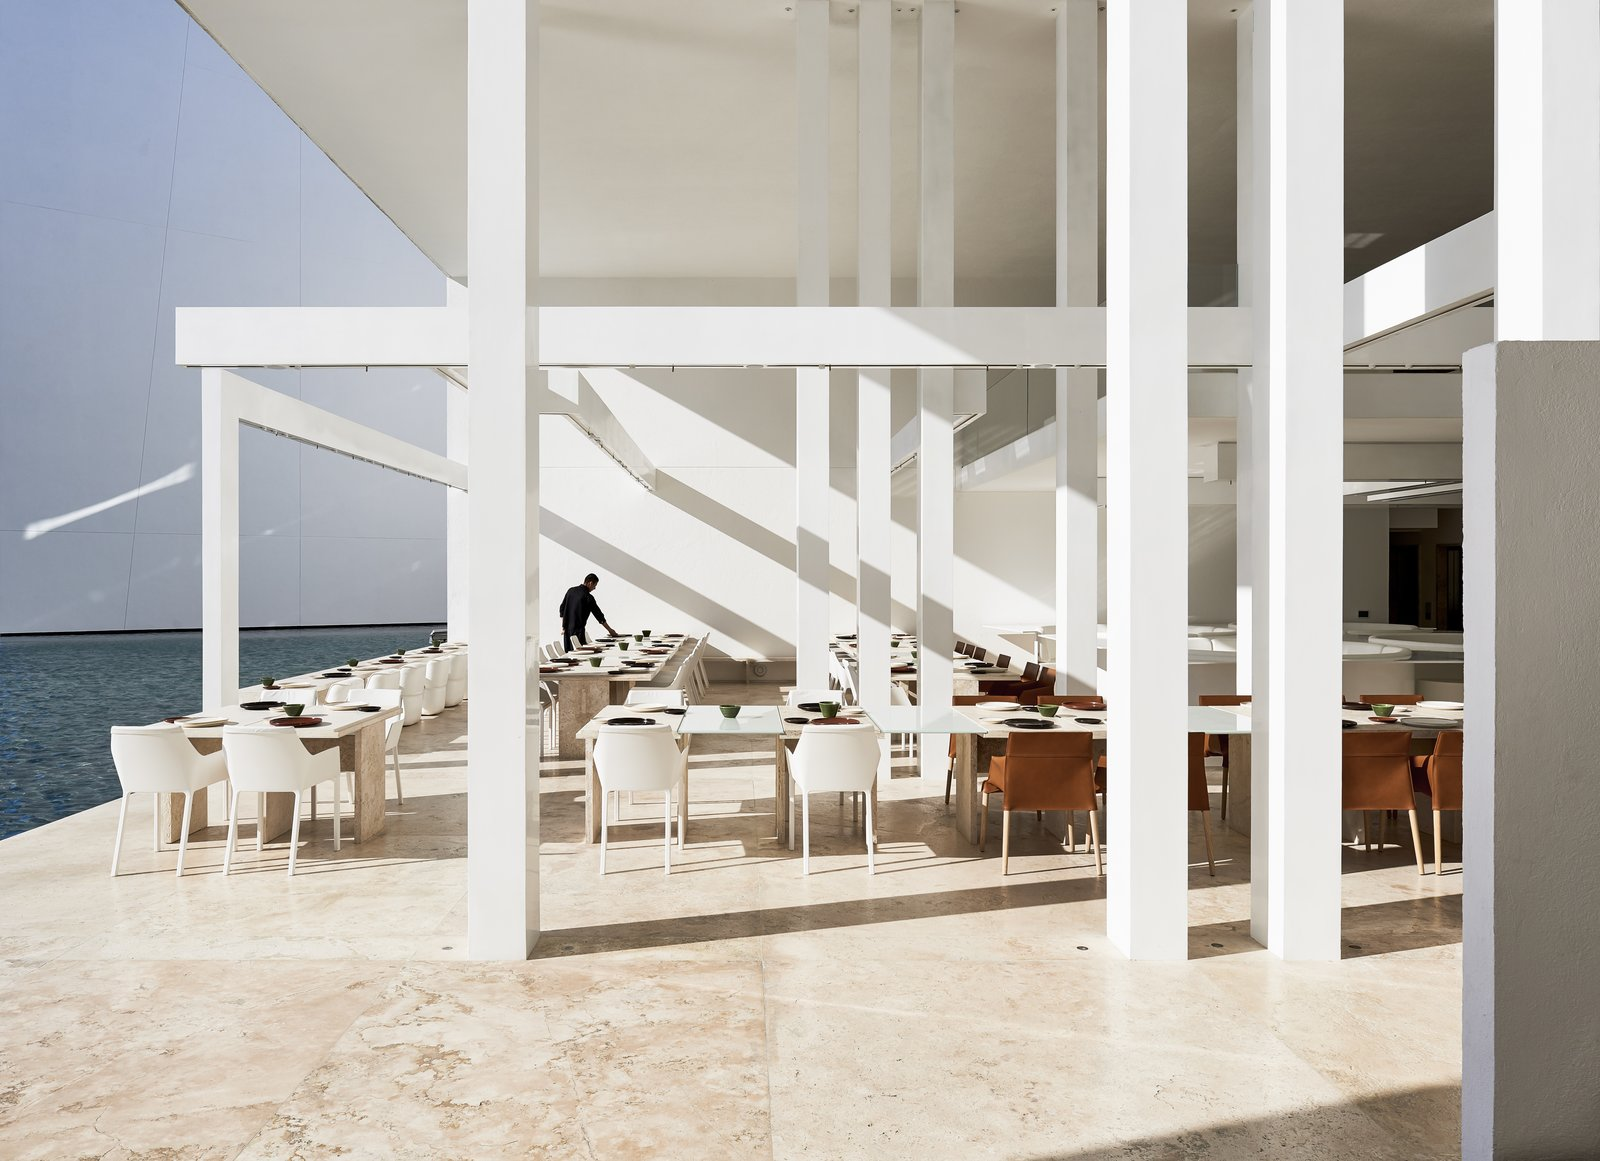 Desert, Large Patio, Porch, Deck, Dining Room, Travertine Floor, Chair, and Table With white travertine floors and muted, modern furnishings by Poliform, this restaurant at the resort is all about the view of the ocean and the sensoral connectivity to it.  Photo 2 of 12 in An Exquisite Beach Resort on Baja California Sur Lies Where the Water Meets the Horizon